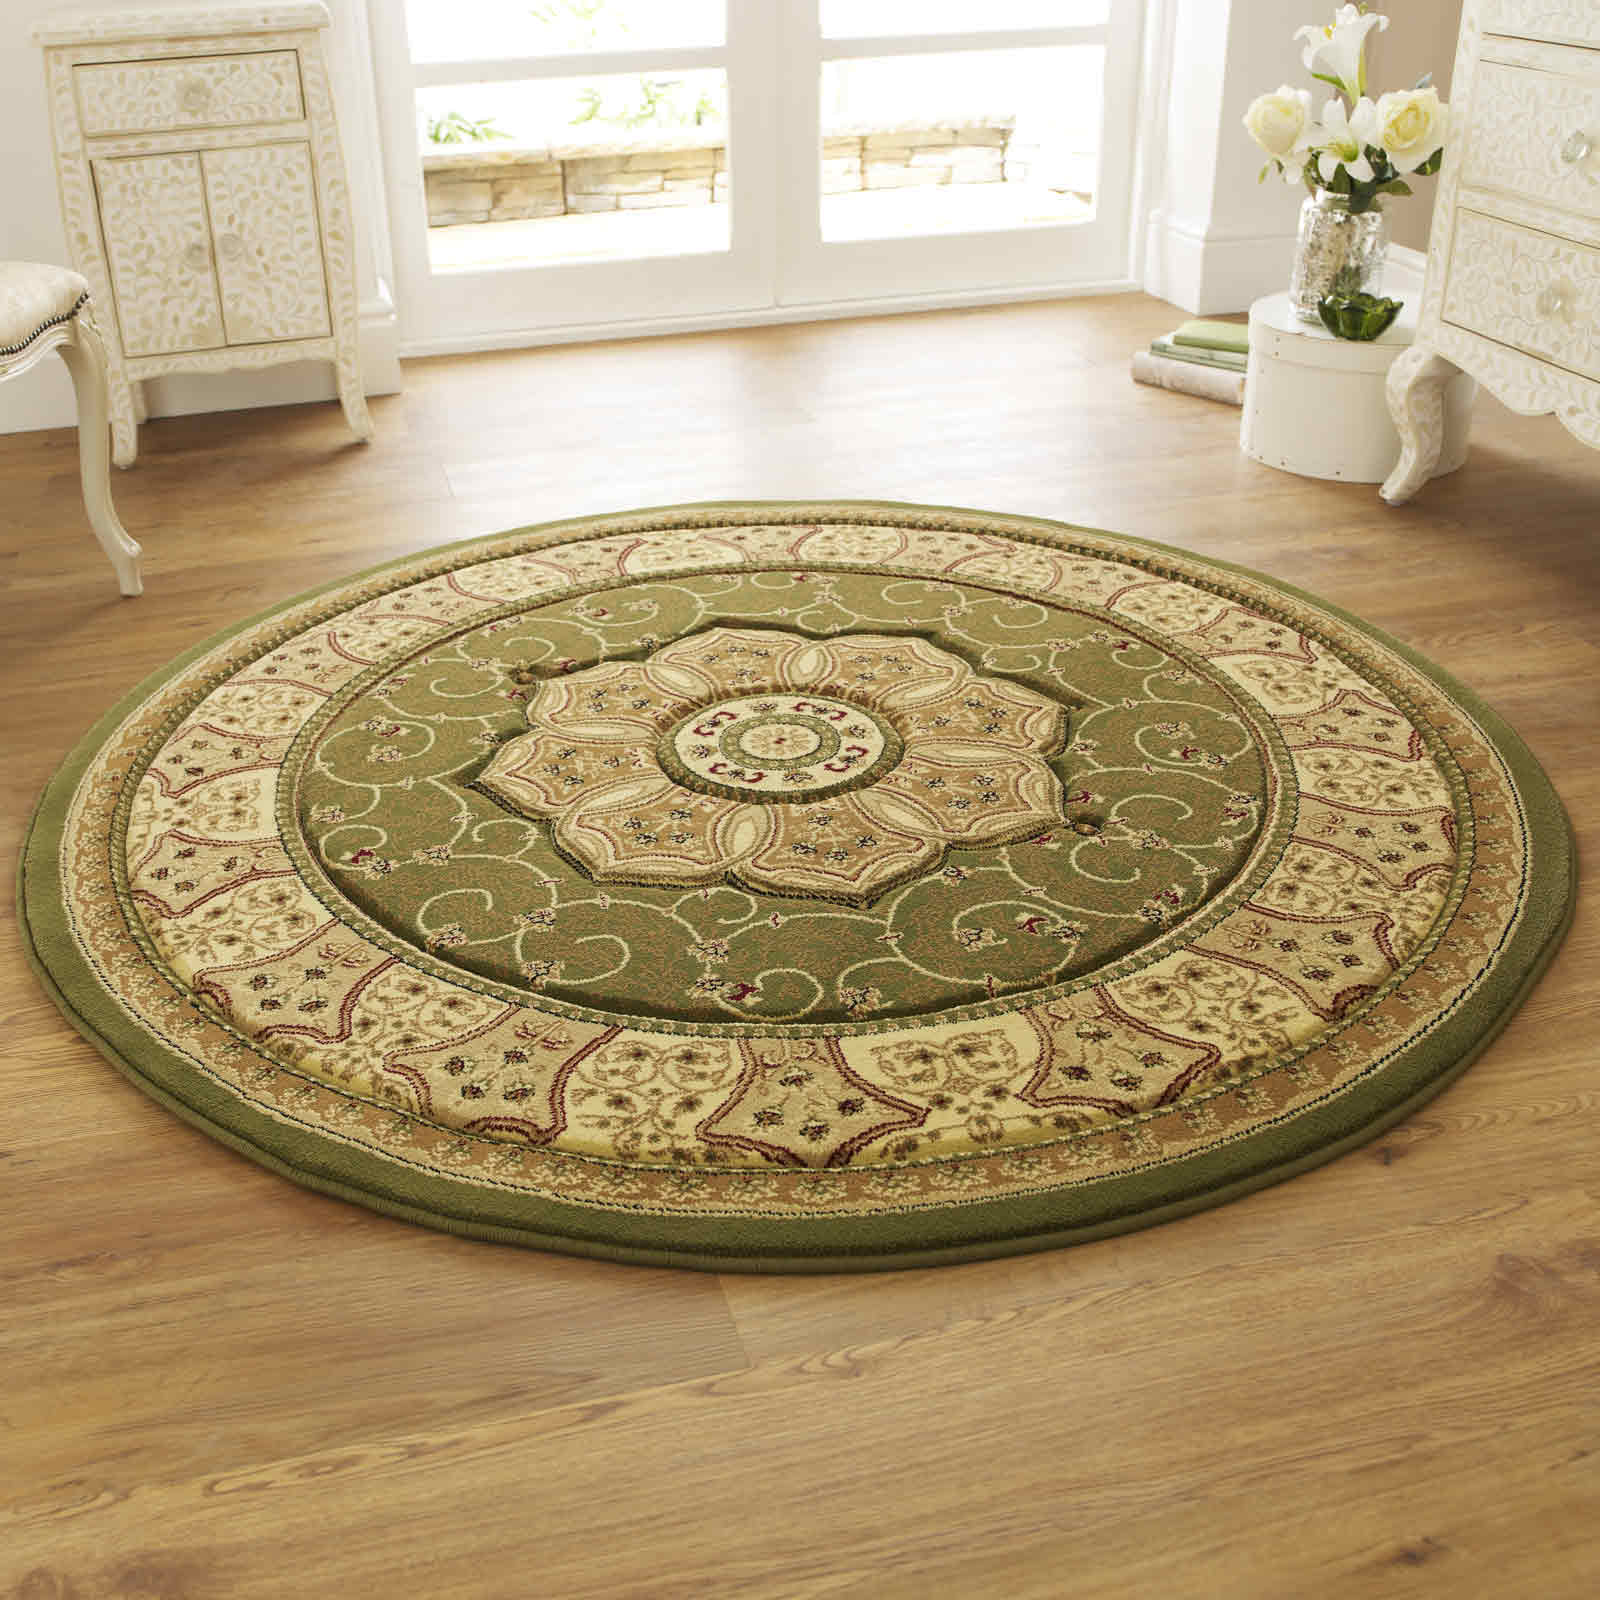 Heritage 4400 Circular Rugs In Green Free Uk Delivery